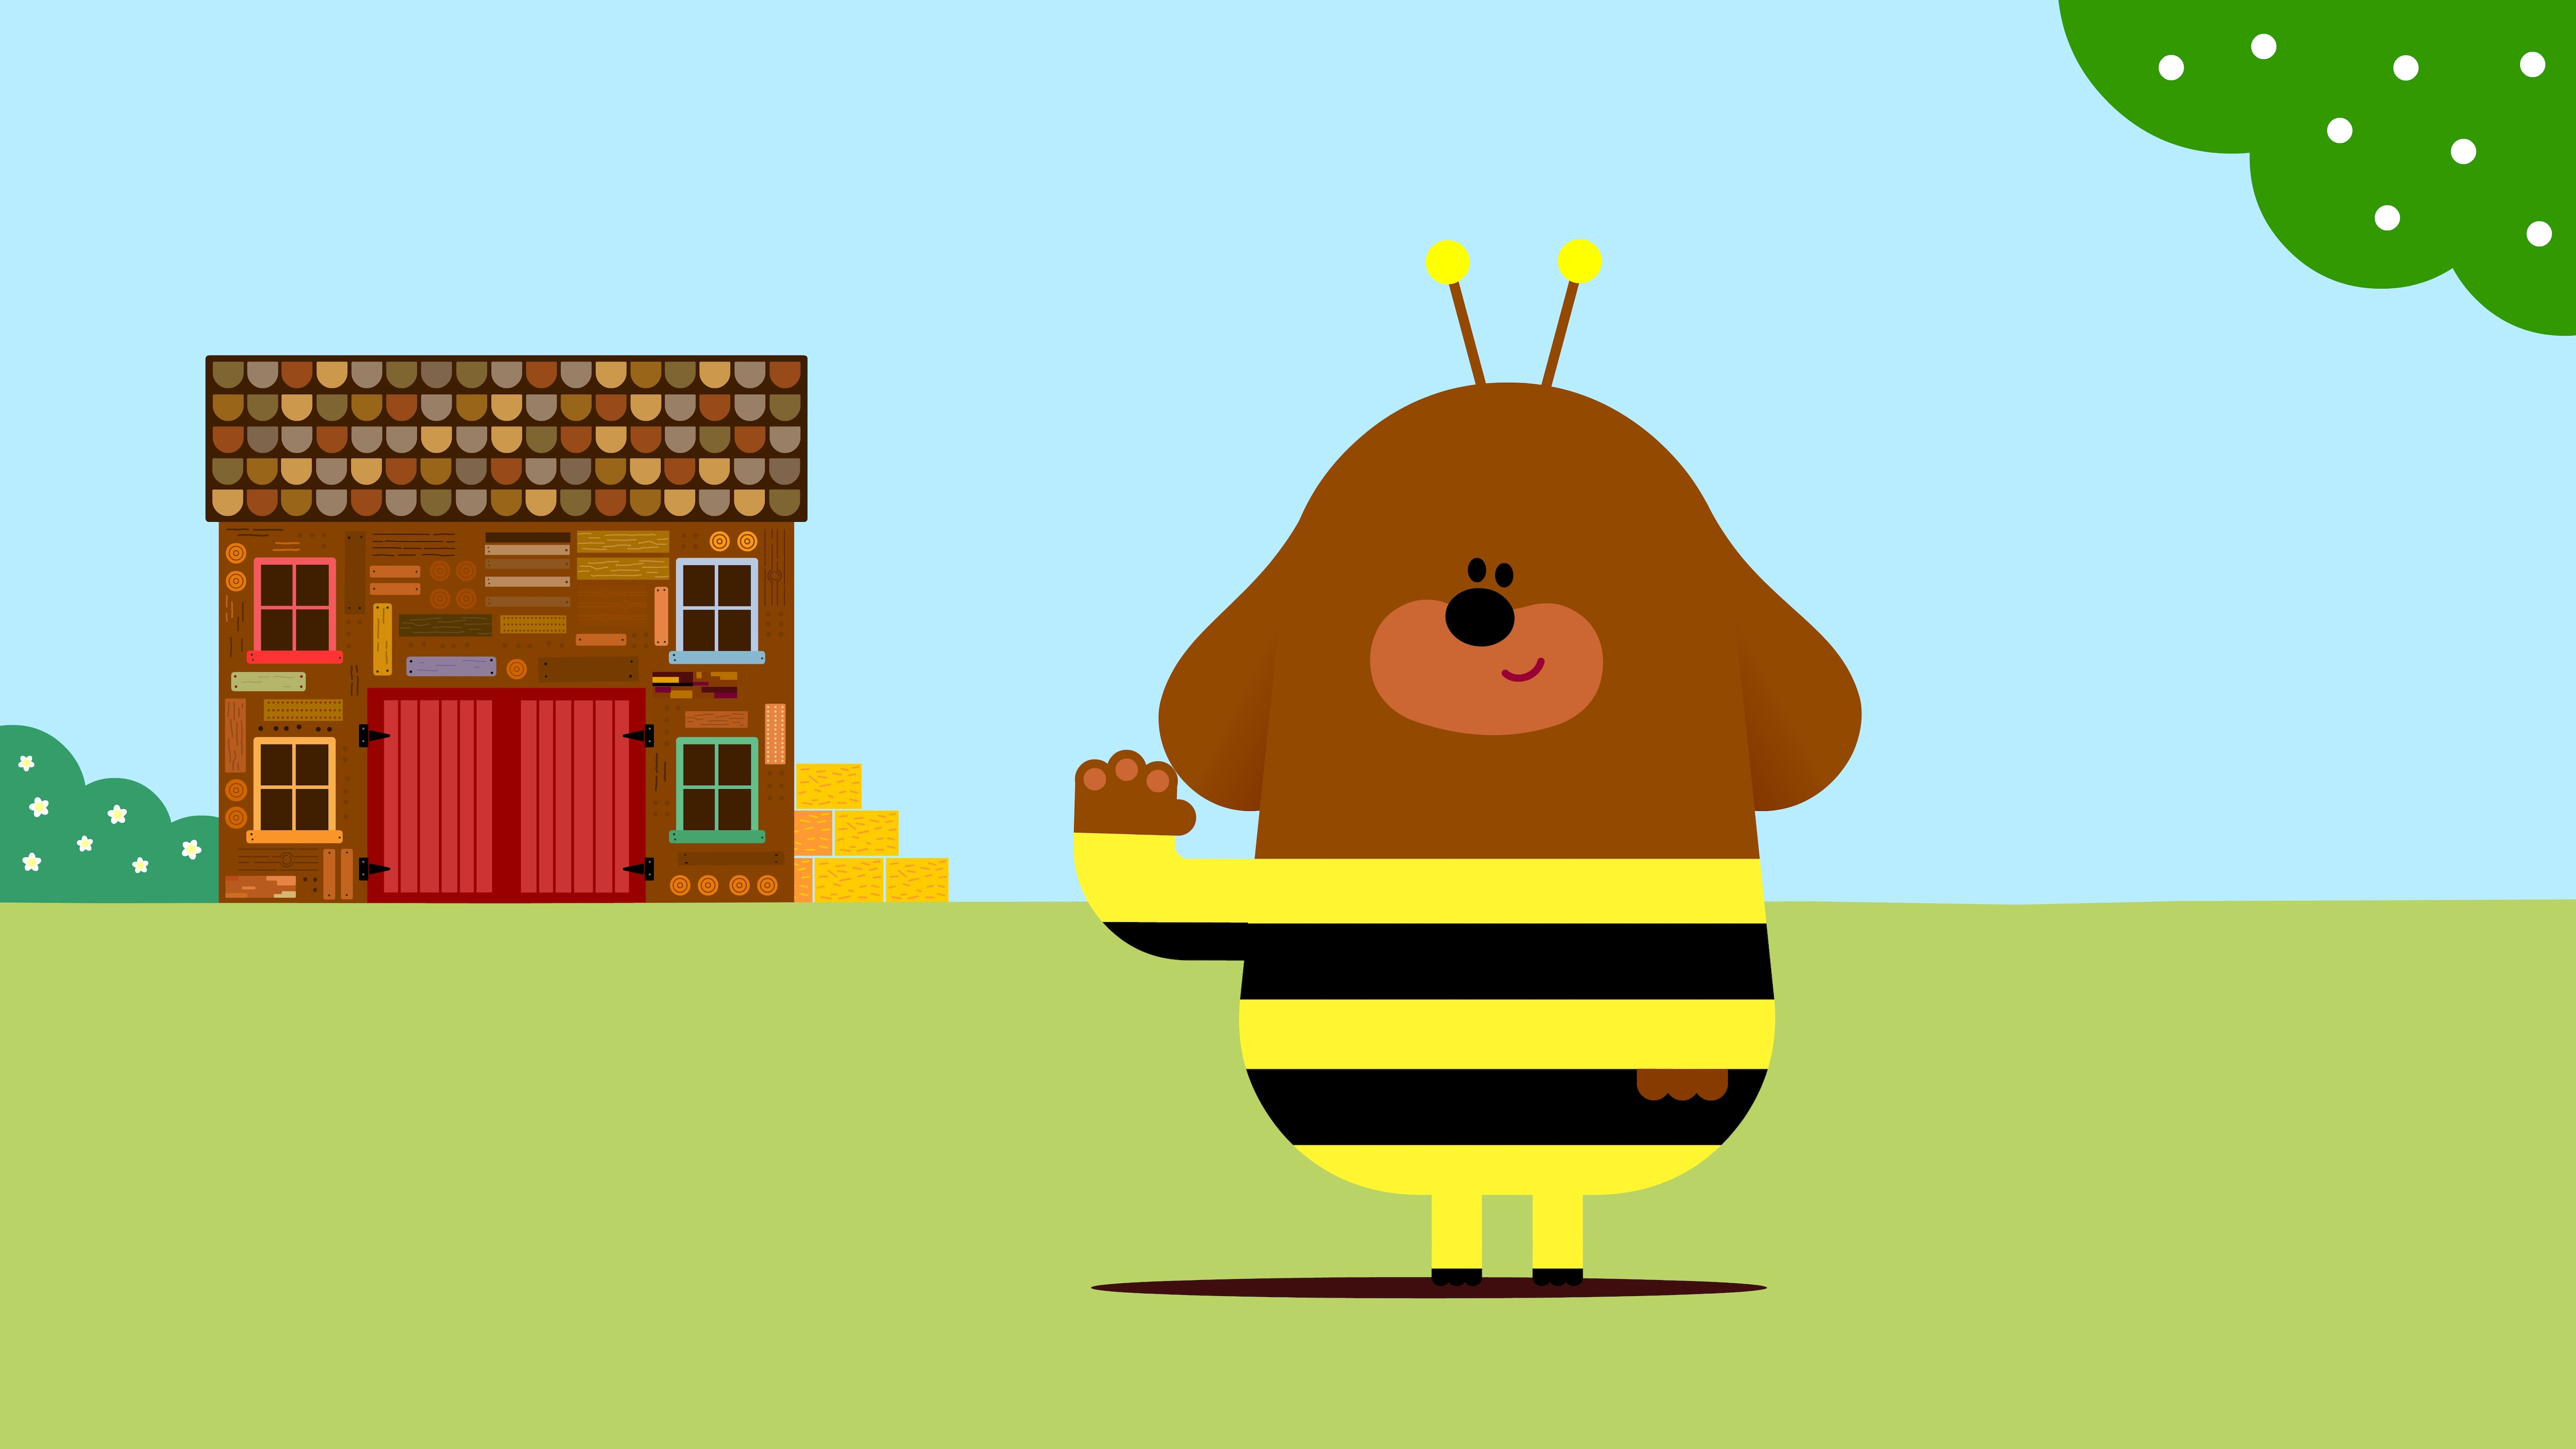 Well That Was Fun Wasn't It Duggee?